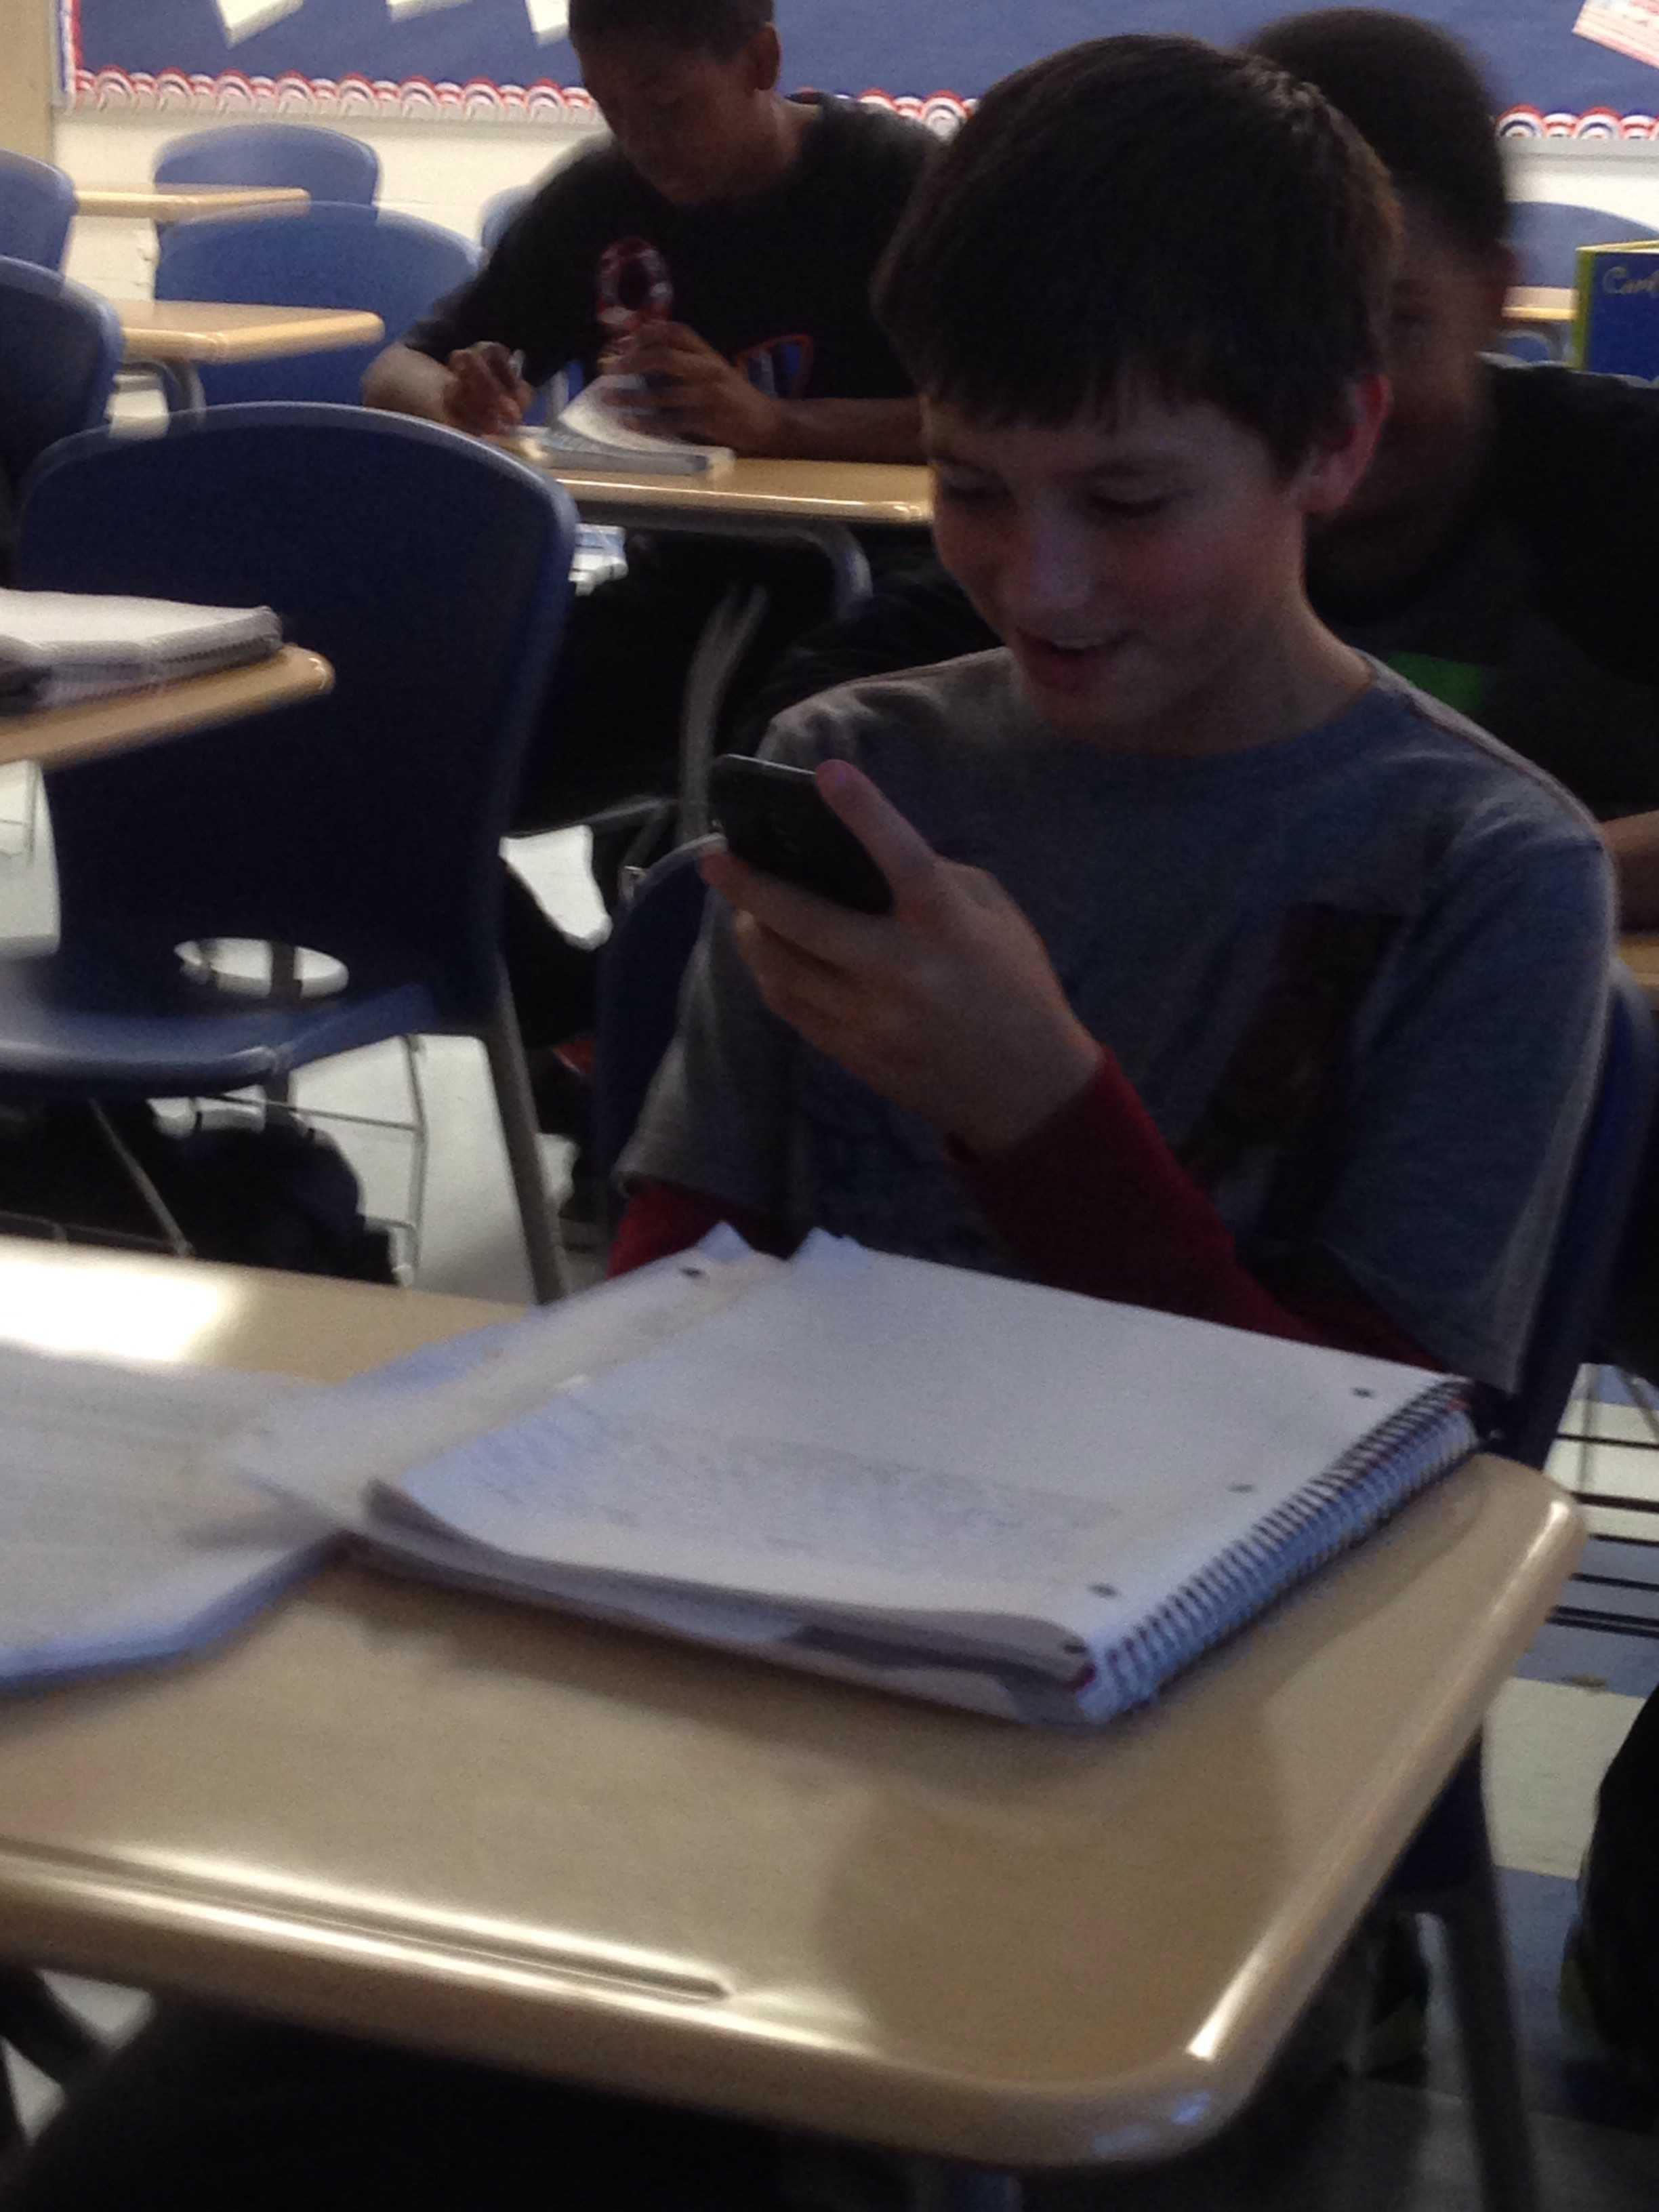 Researching articles on genocide for an essay in English class, Freshman Sean Dressler uses his phone with the teacher's permission.